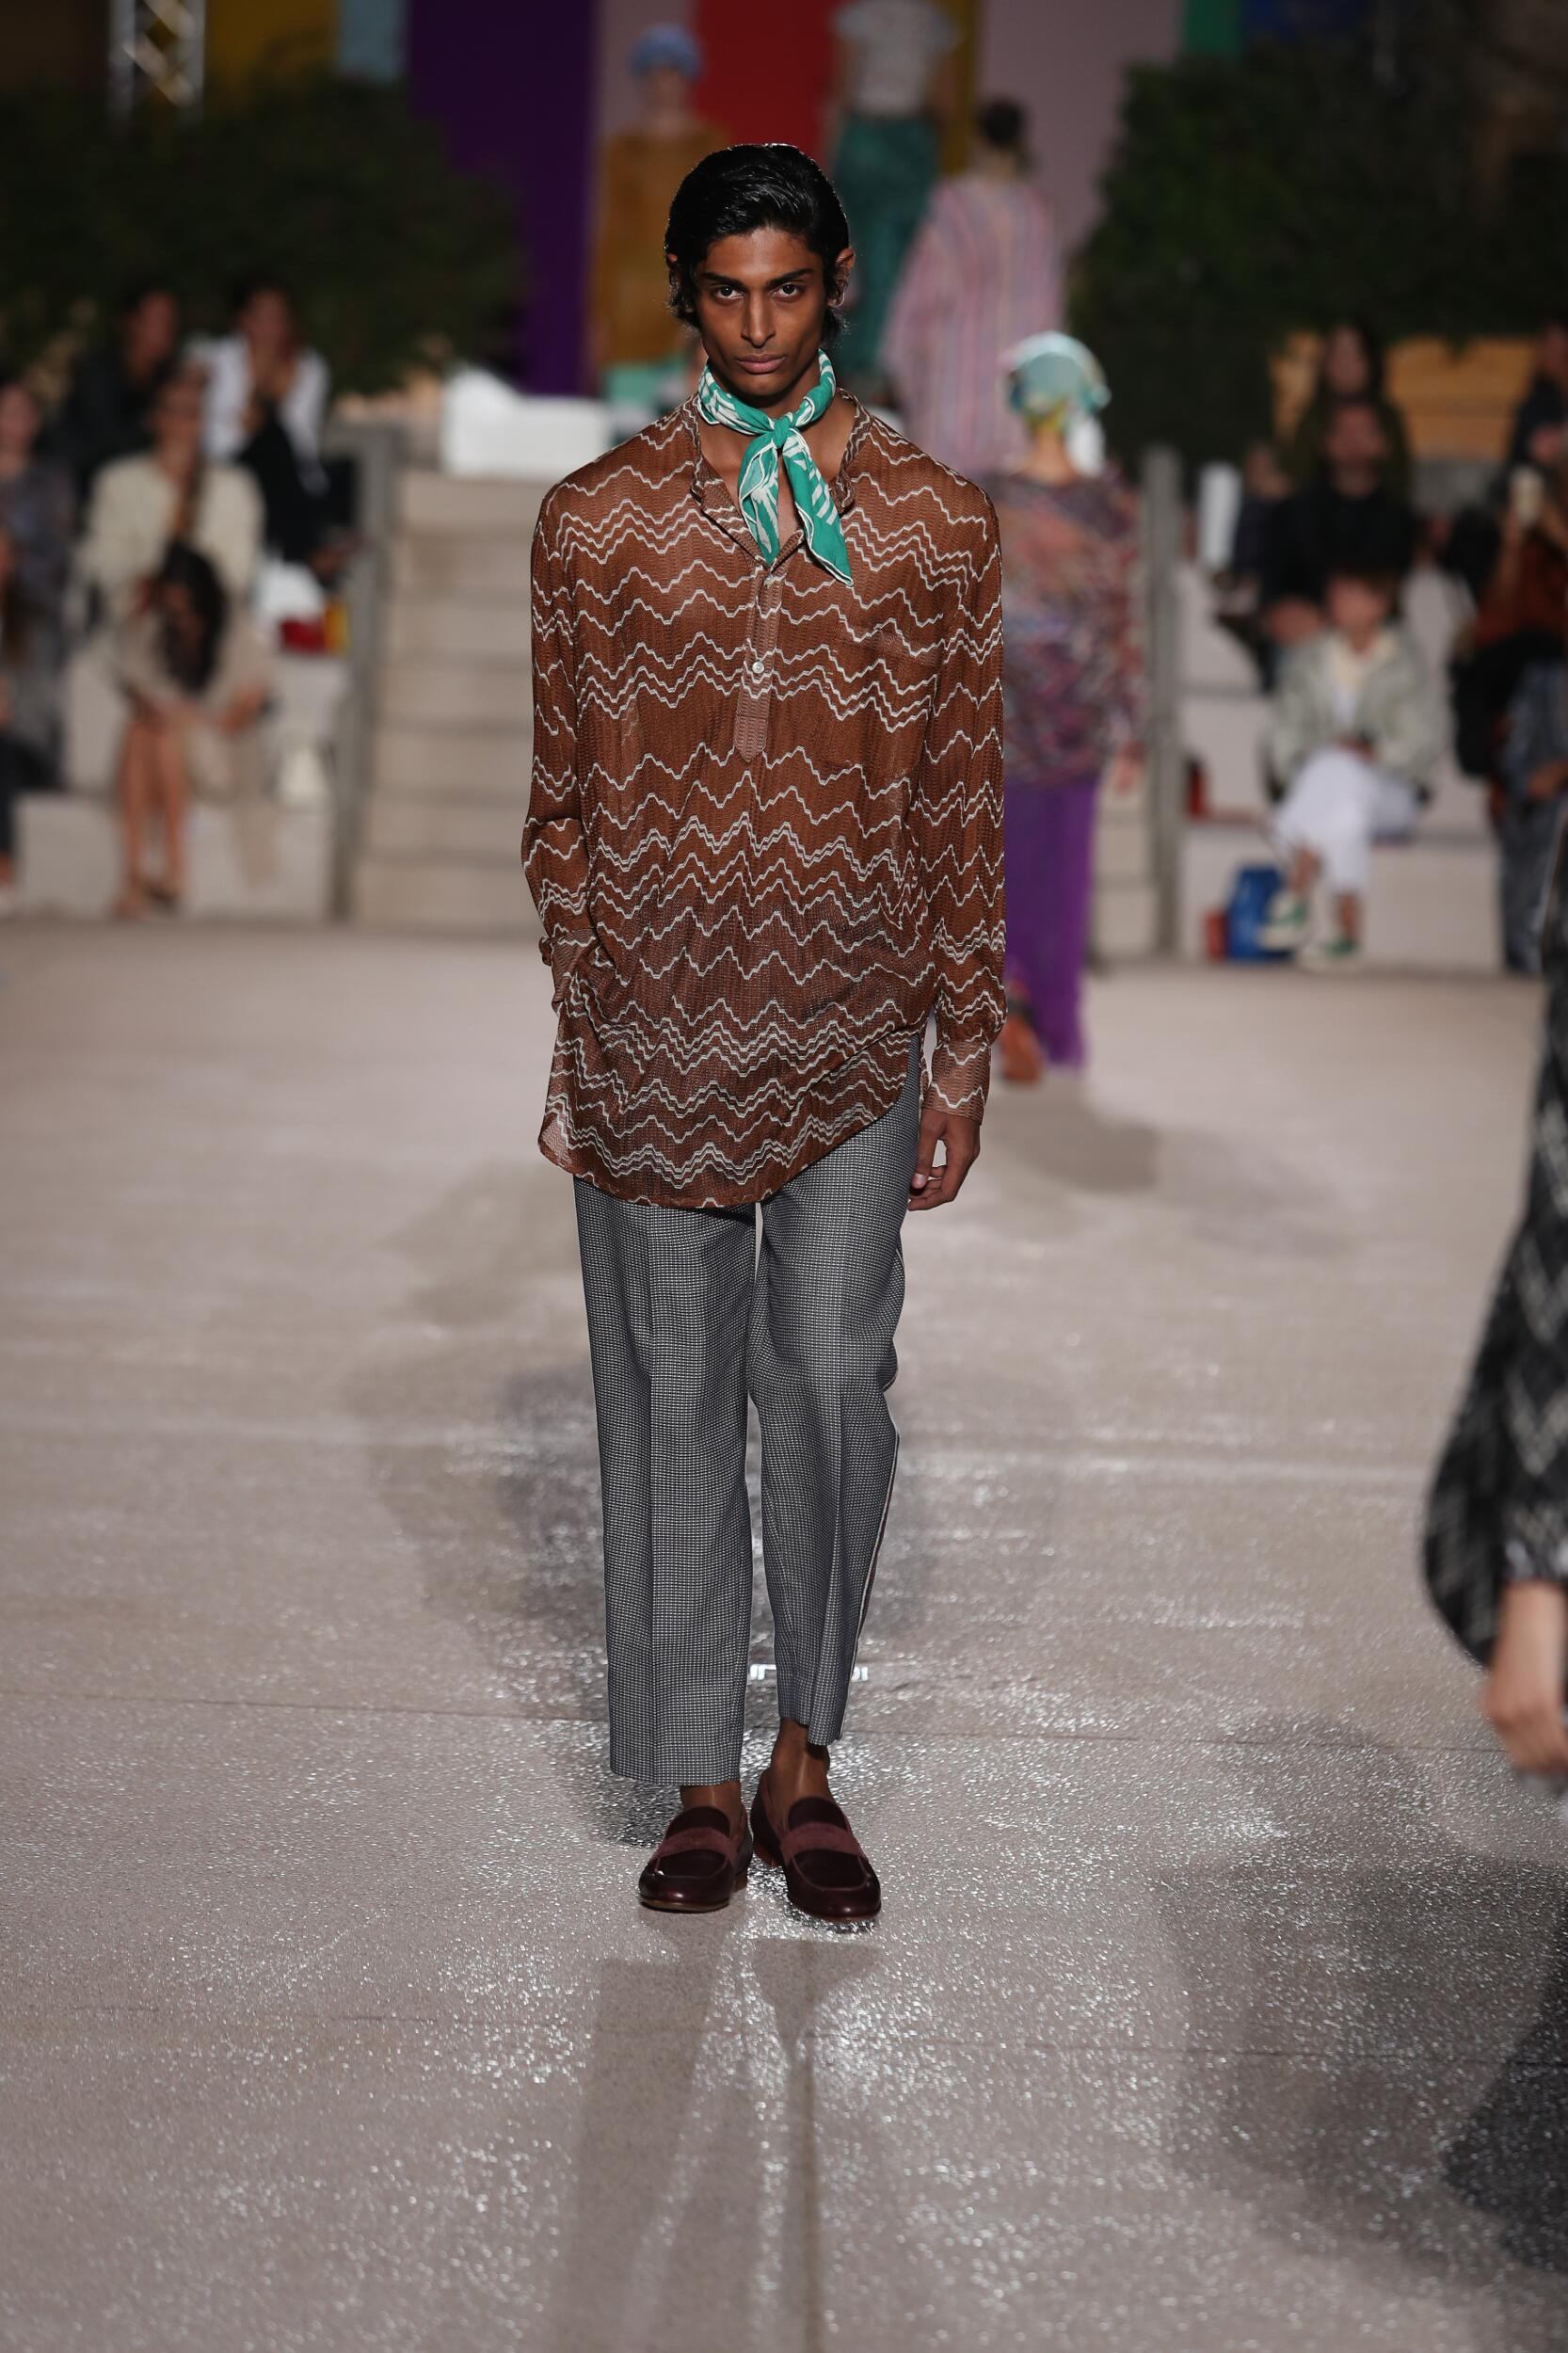 Man SS 2020 Missoni Show Milan Fashion Week